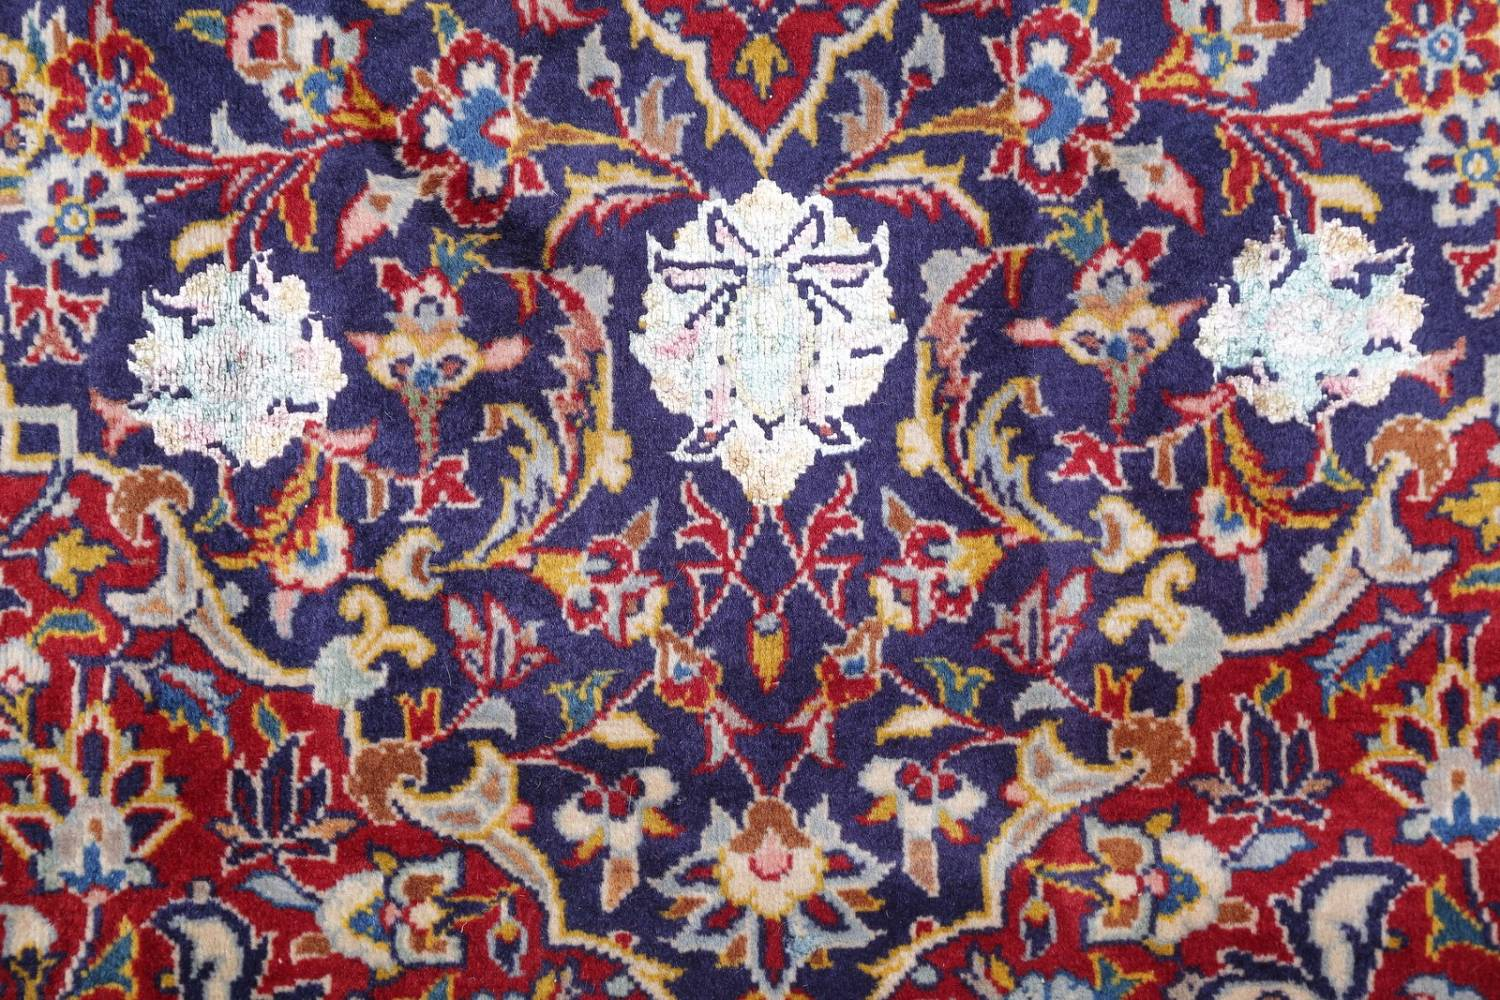 Vegetable Dye Floral Blue Kashan Persian Hand-Knotted Area Rug Wool 5x7 image 8